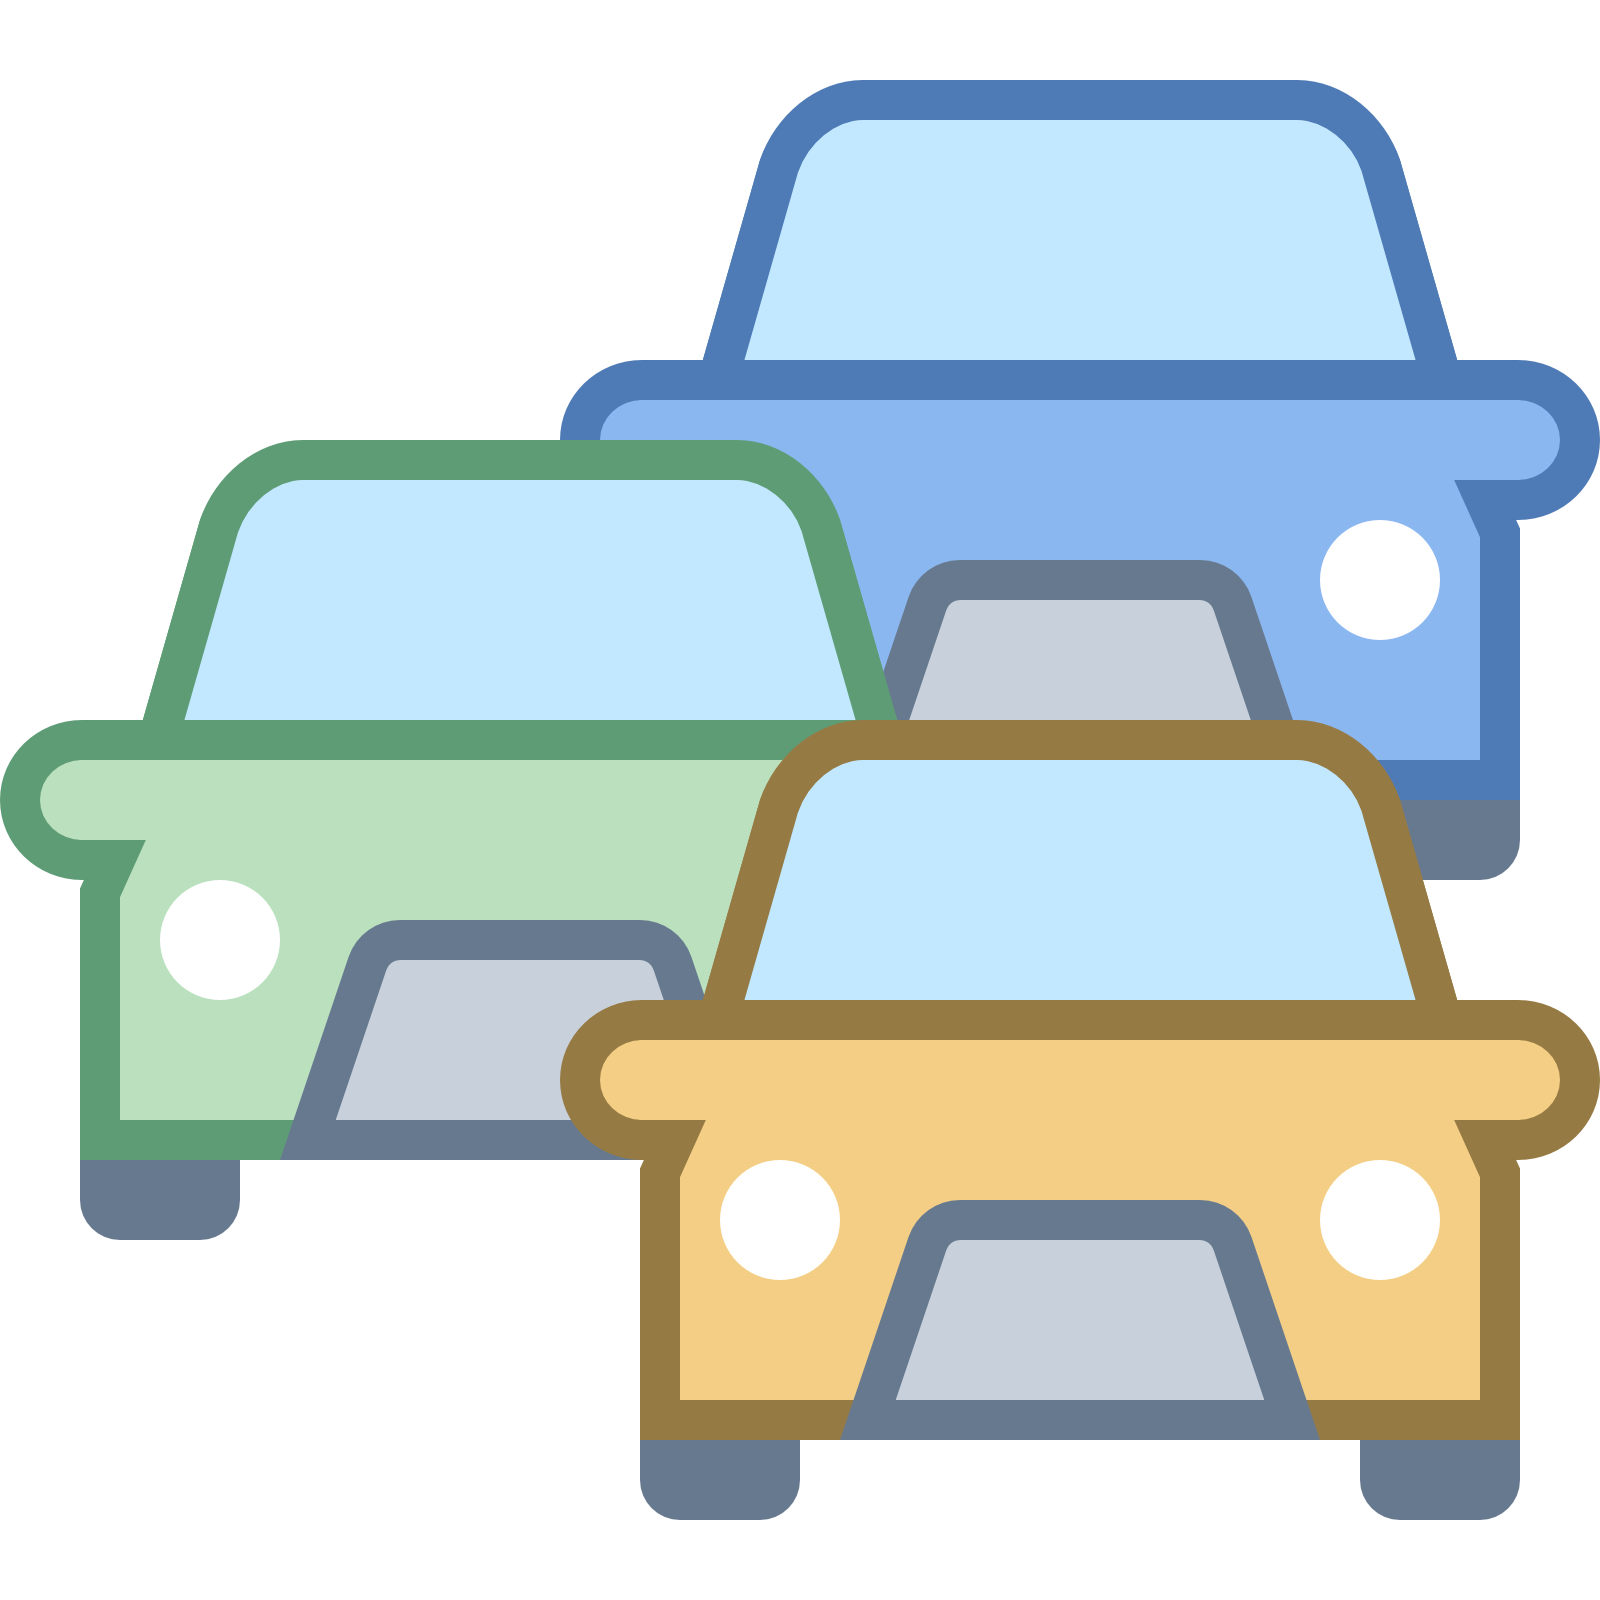 Driving clipart car owner. Computer icons traffic congestion